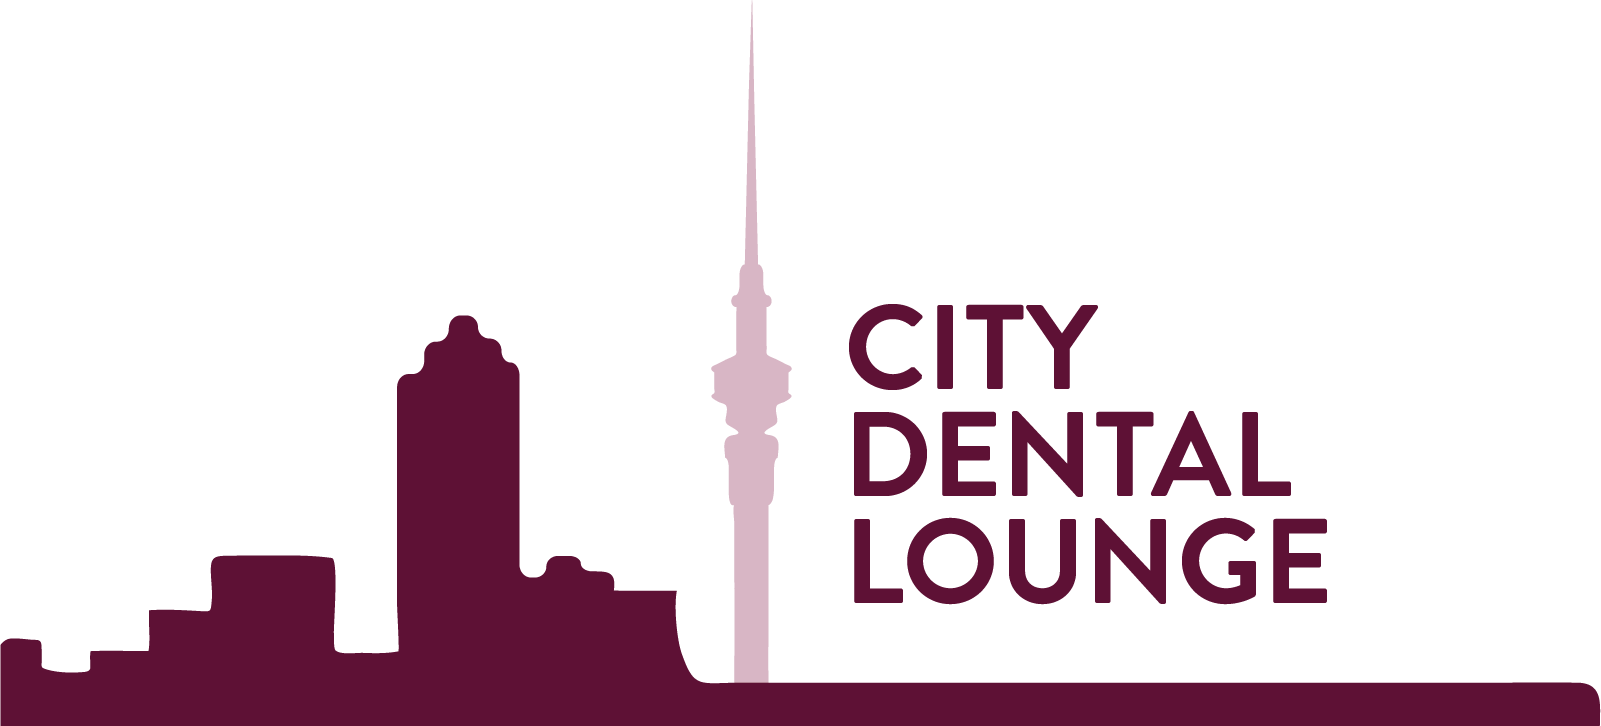 CITY DENTAL LOUNGE